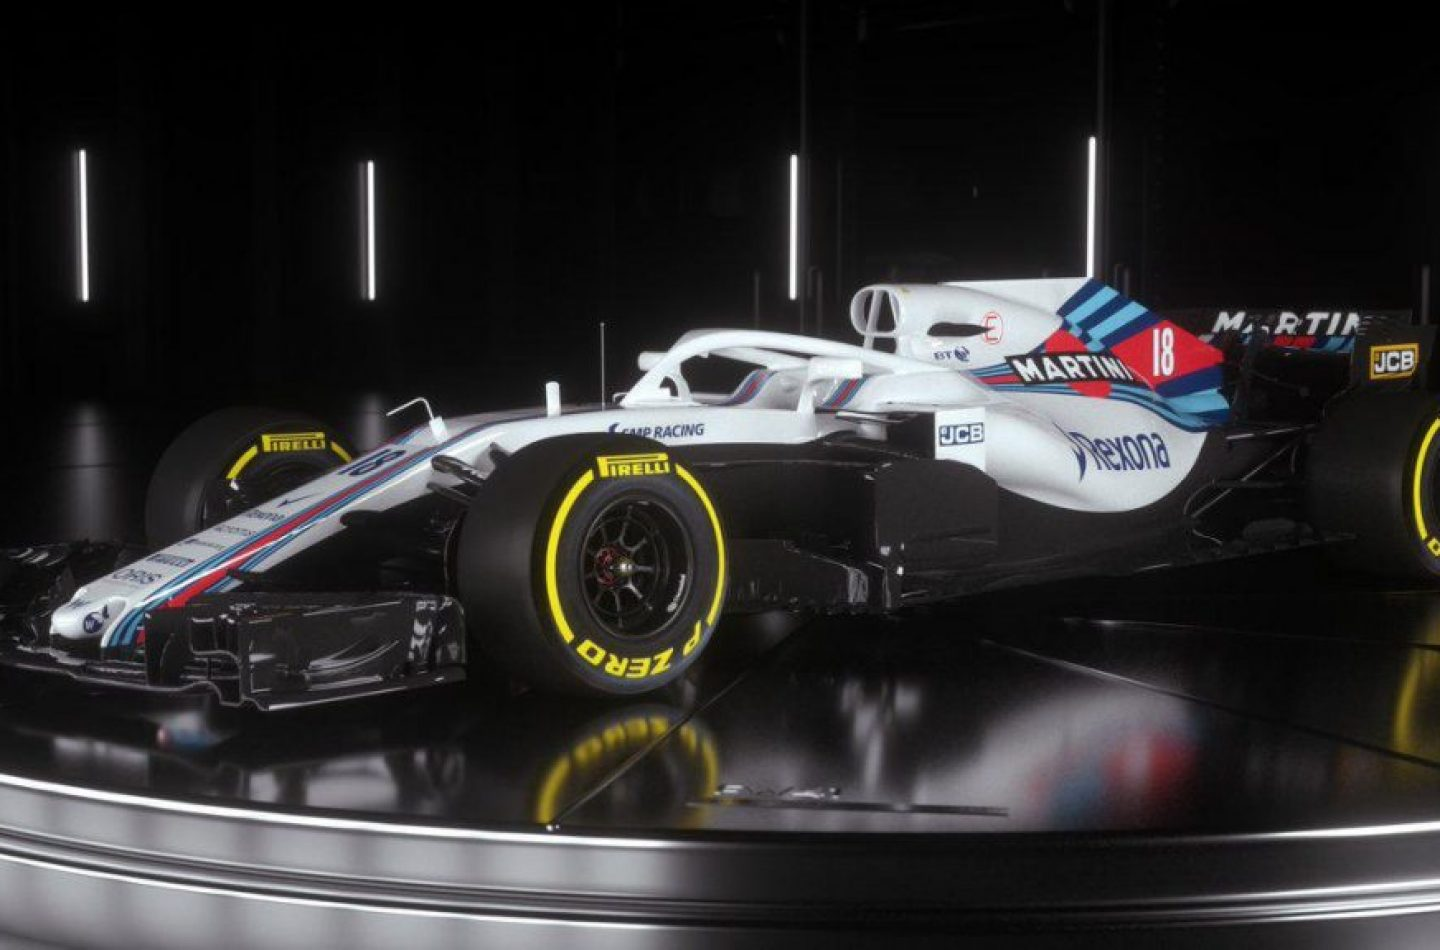 F1 | Ecco la Williams FW41 per la stagione 2018